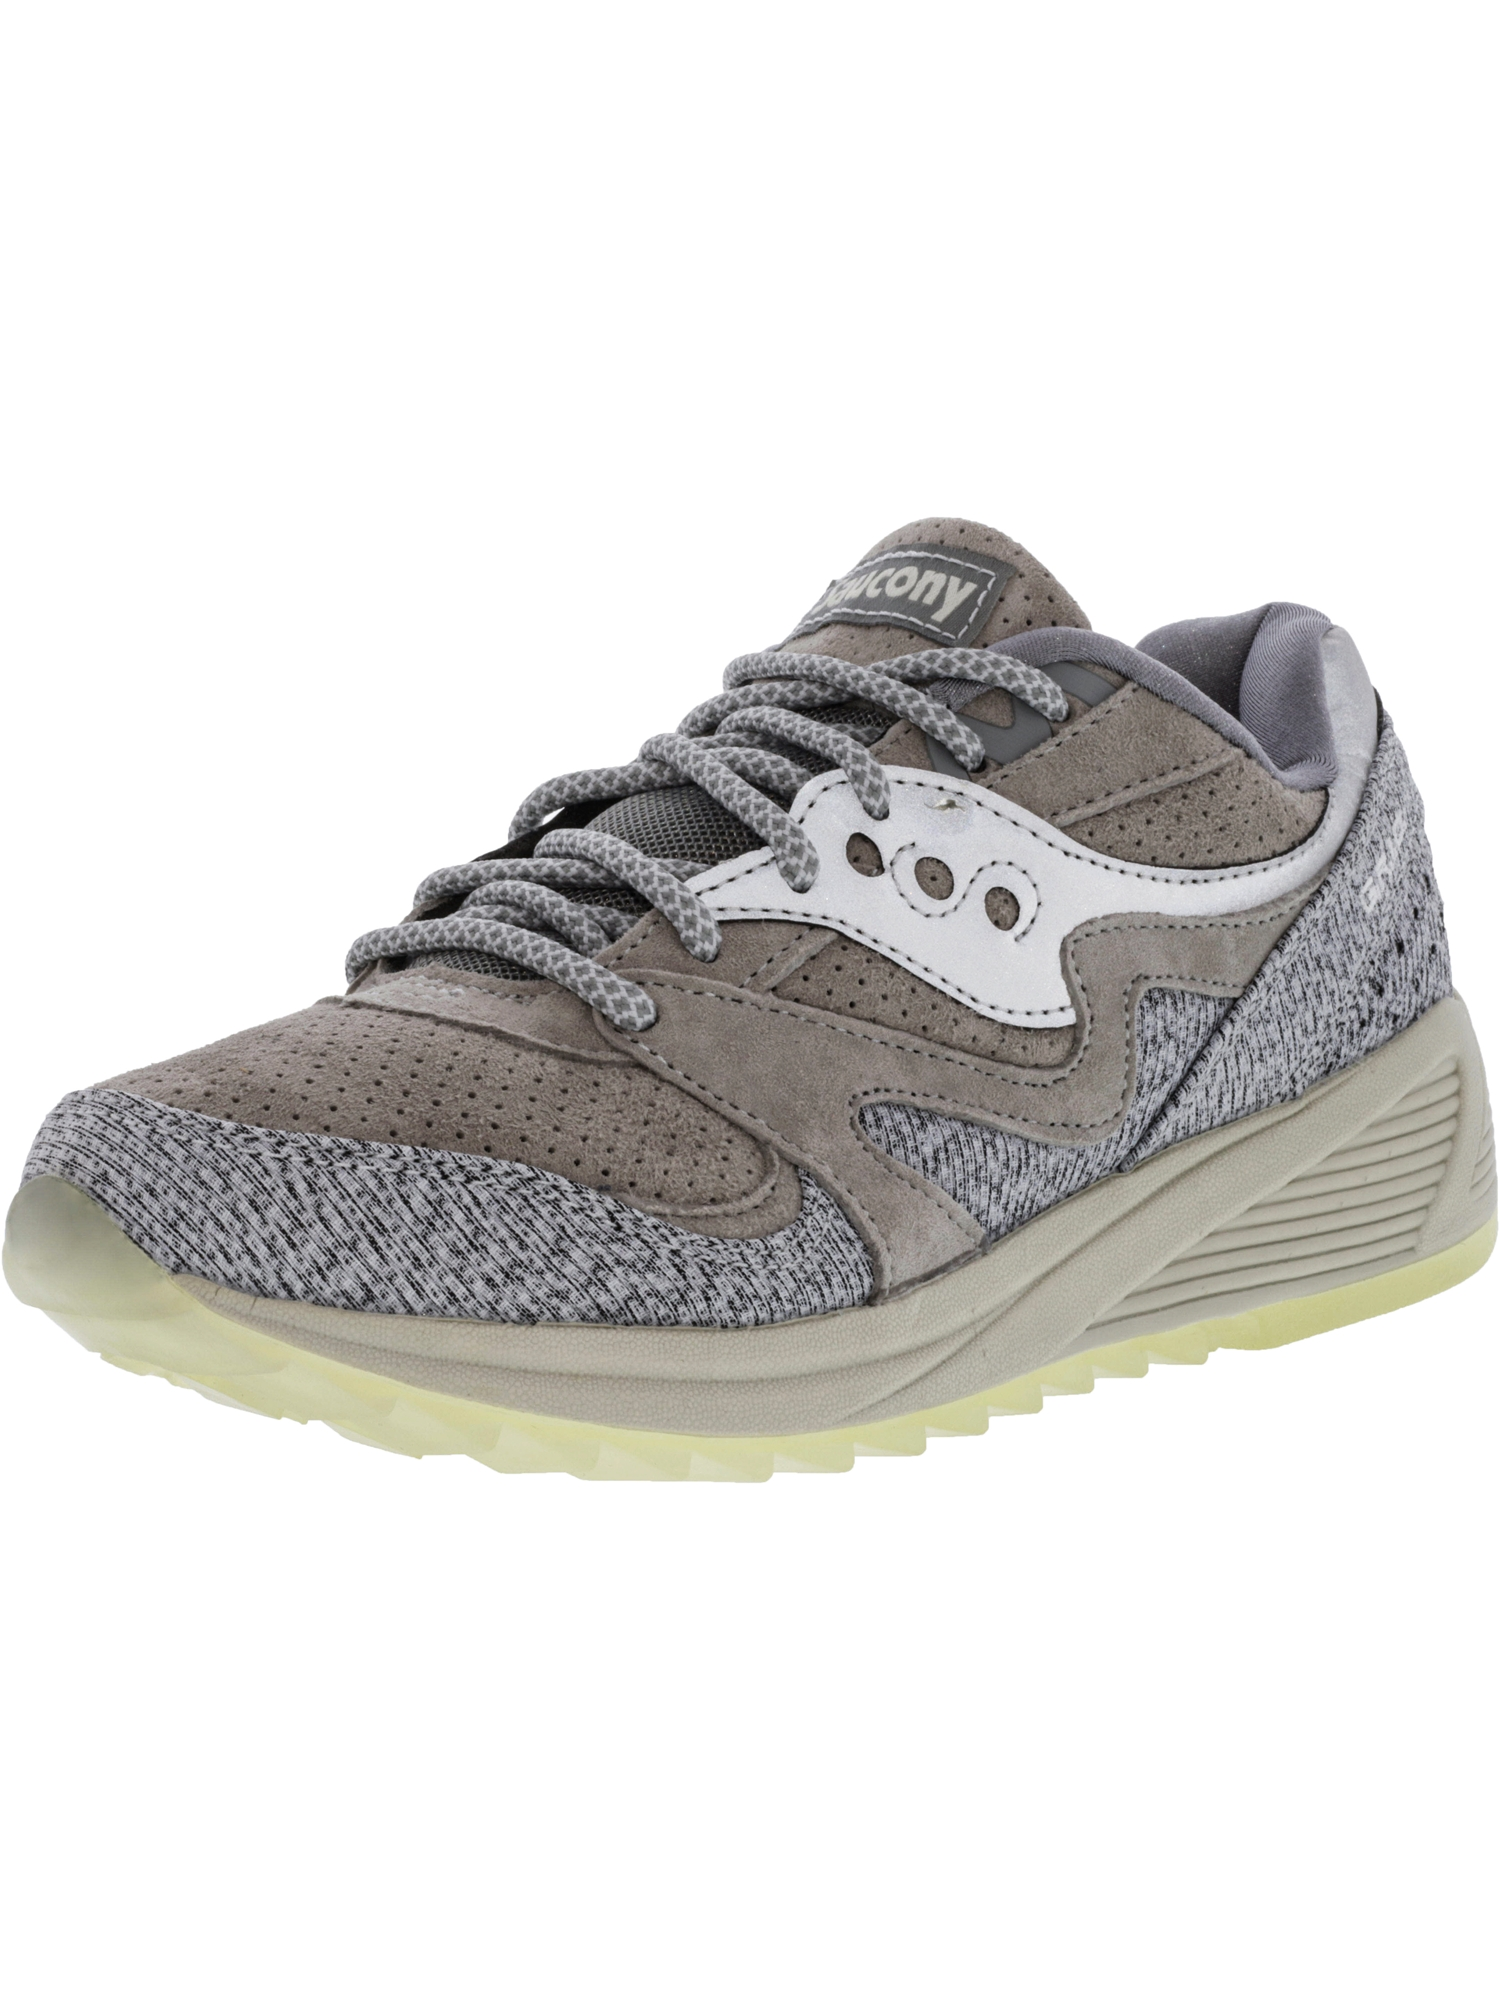 Saucony Men's Grid 8000 Grey Ankle-High Fashion Sneaker - 12M